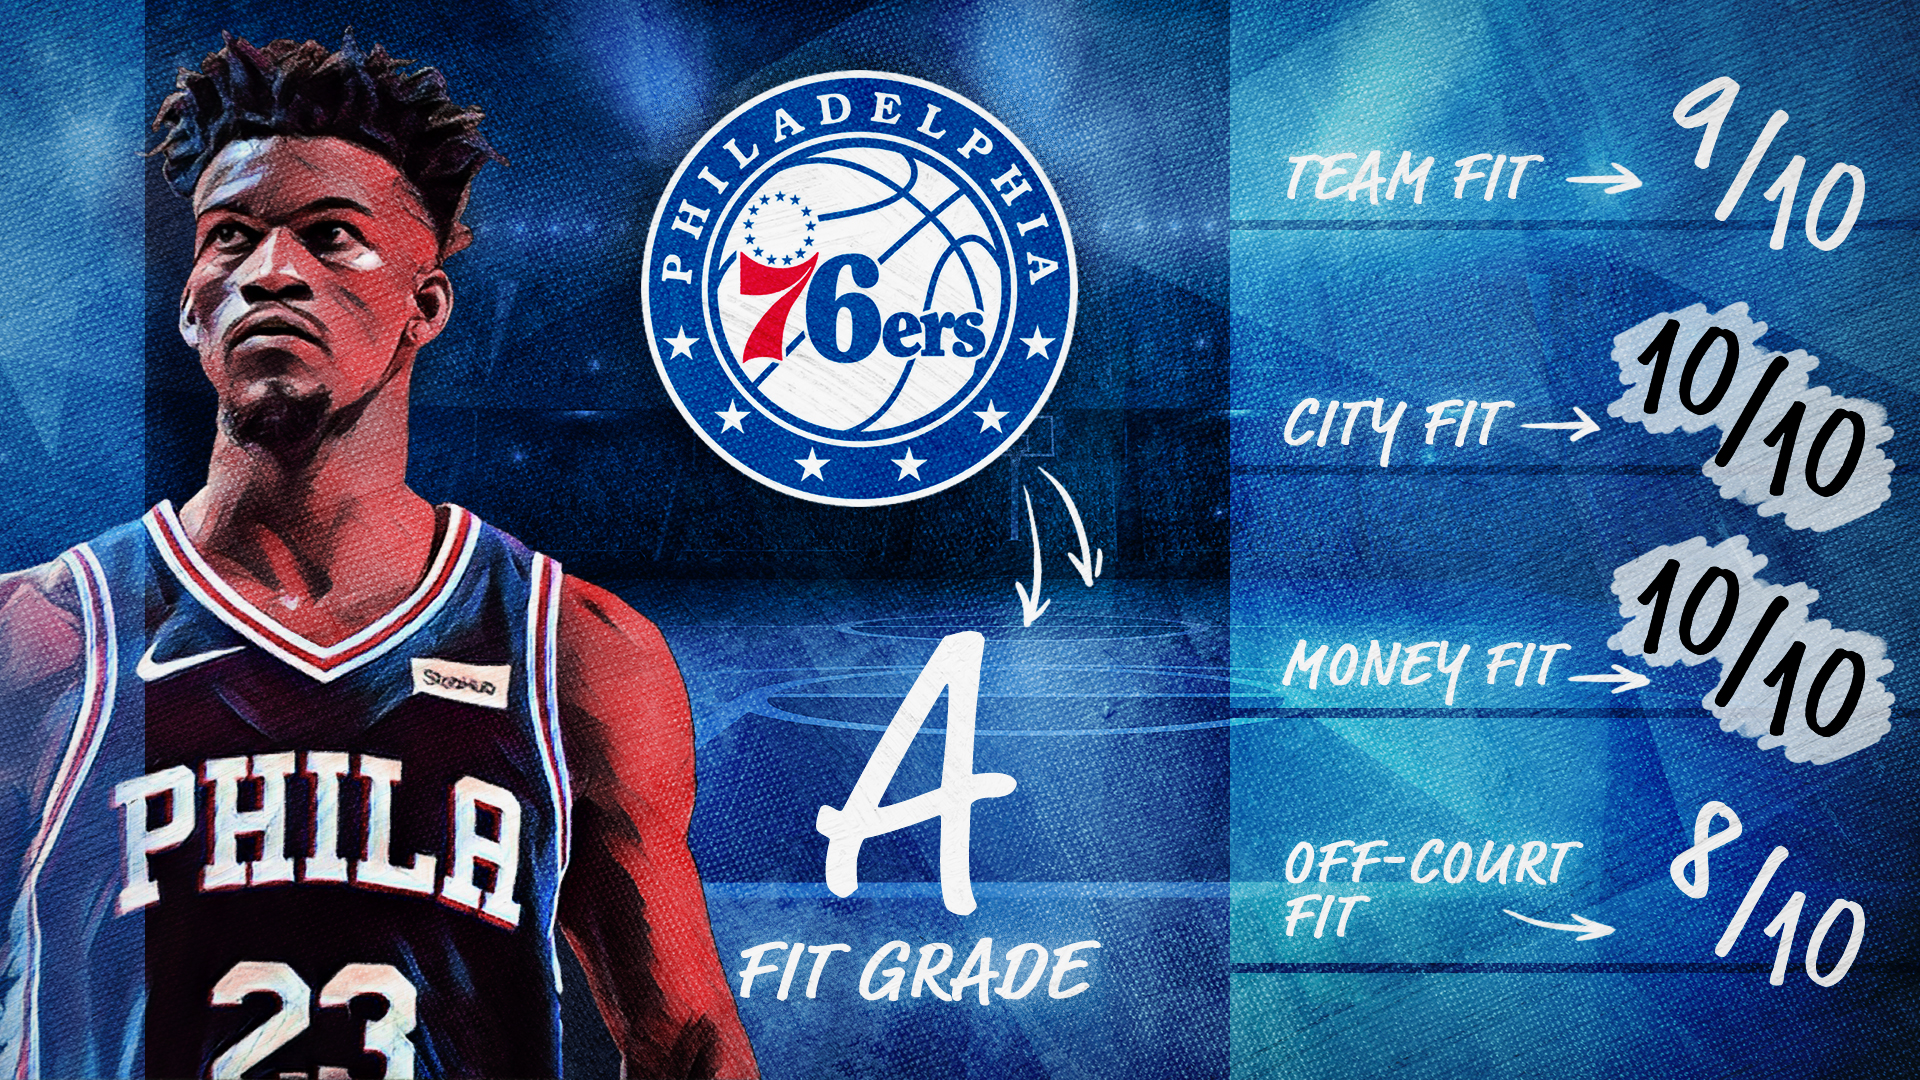 DTV_NBA_FreeAgency_FitGradeGFX_Butler_no_v1.jpg